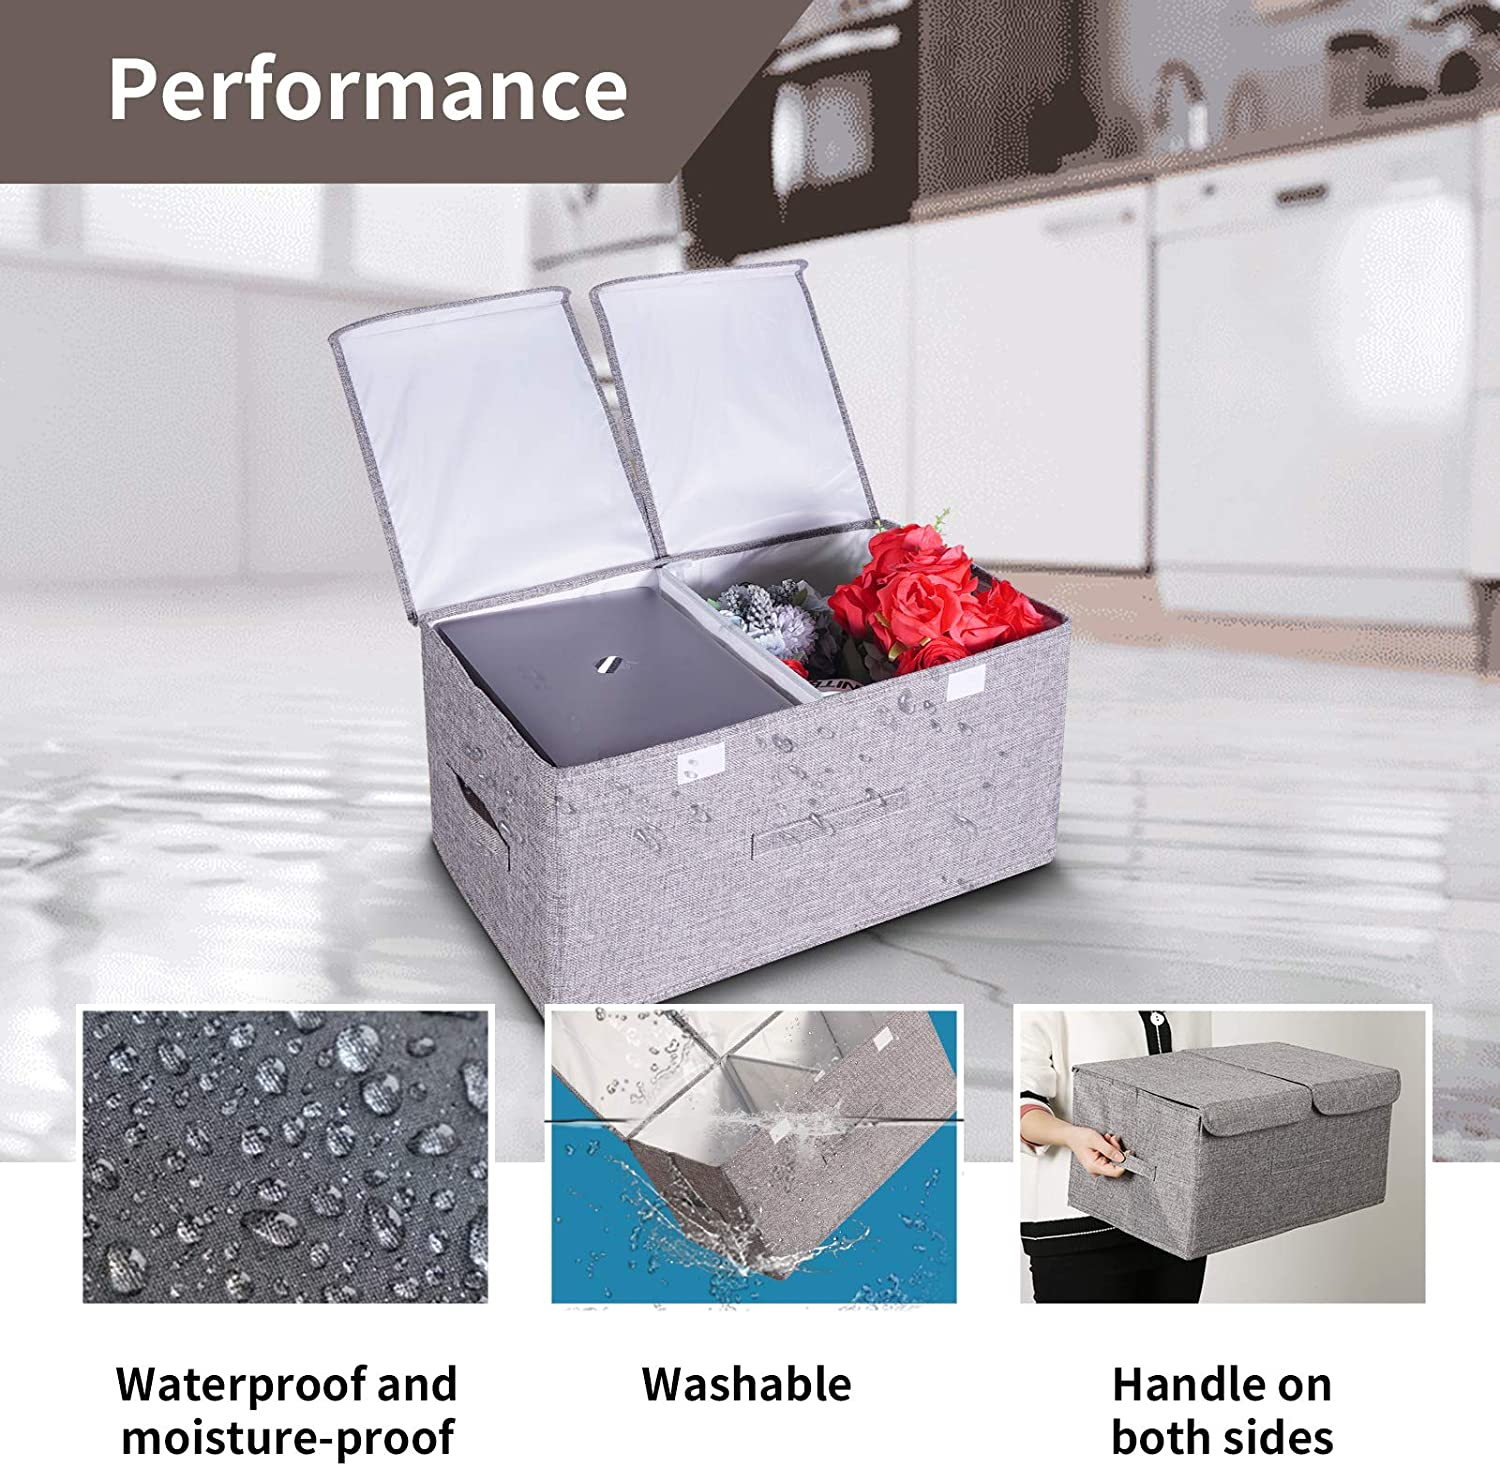 Large Foldable Storage Bins with Lids Stackable Fabric linen Cubes Closet Organizers with 3 Handles,Organization Storage Basket,Storage Box for Kitchen Cabinet Organizers Office Photo Books Toy 2-Pack